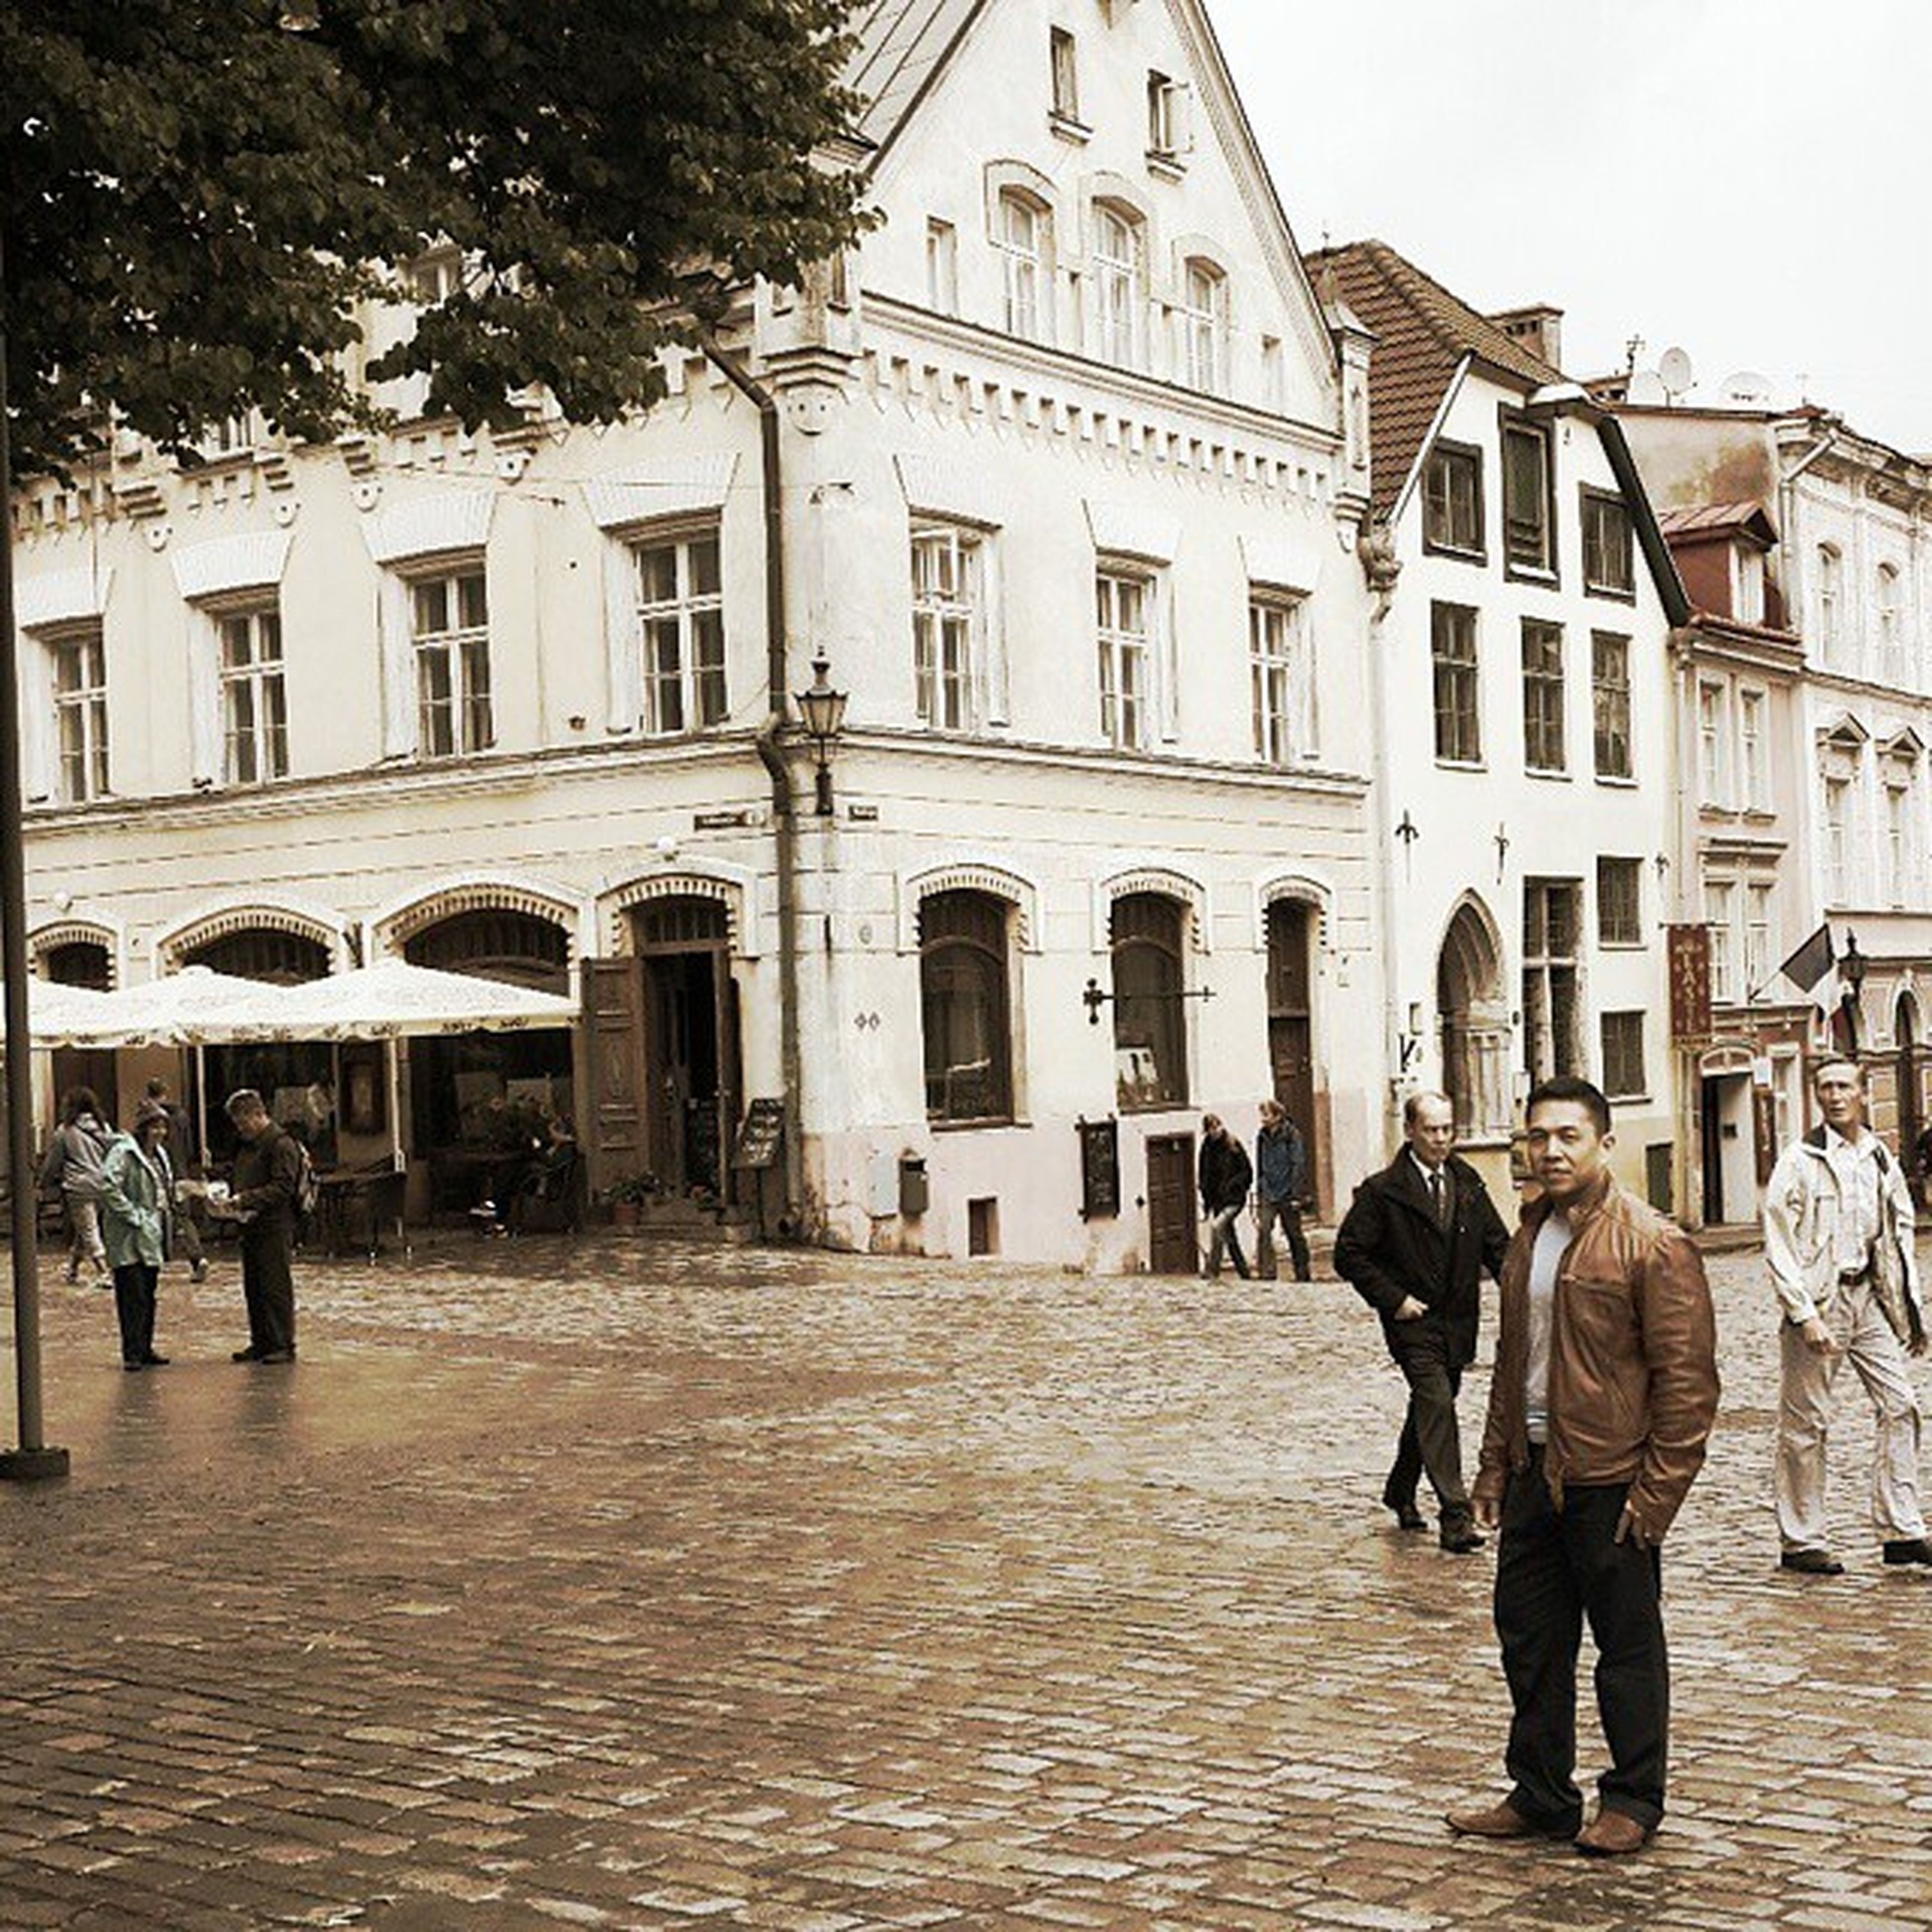 building exterior, architecture, built structure, walking, men, person, lifestyles, city, street, full length, city life, leisure activity, building, rear view, cobblestone, large group of people, day, outdoors